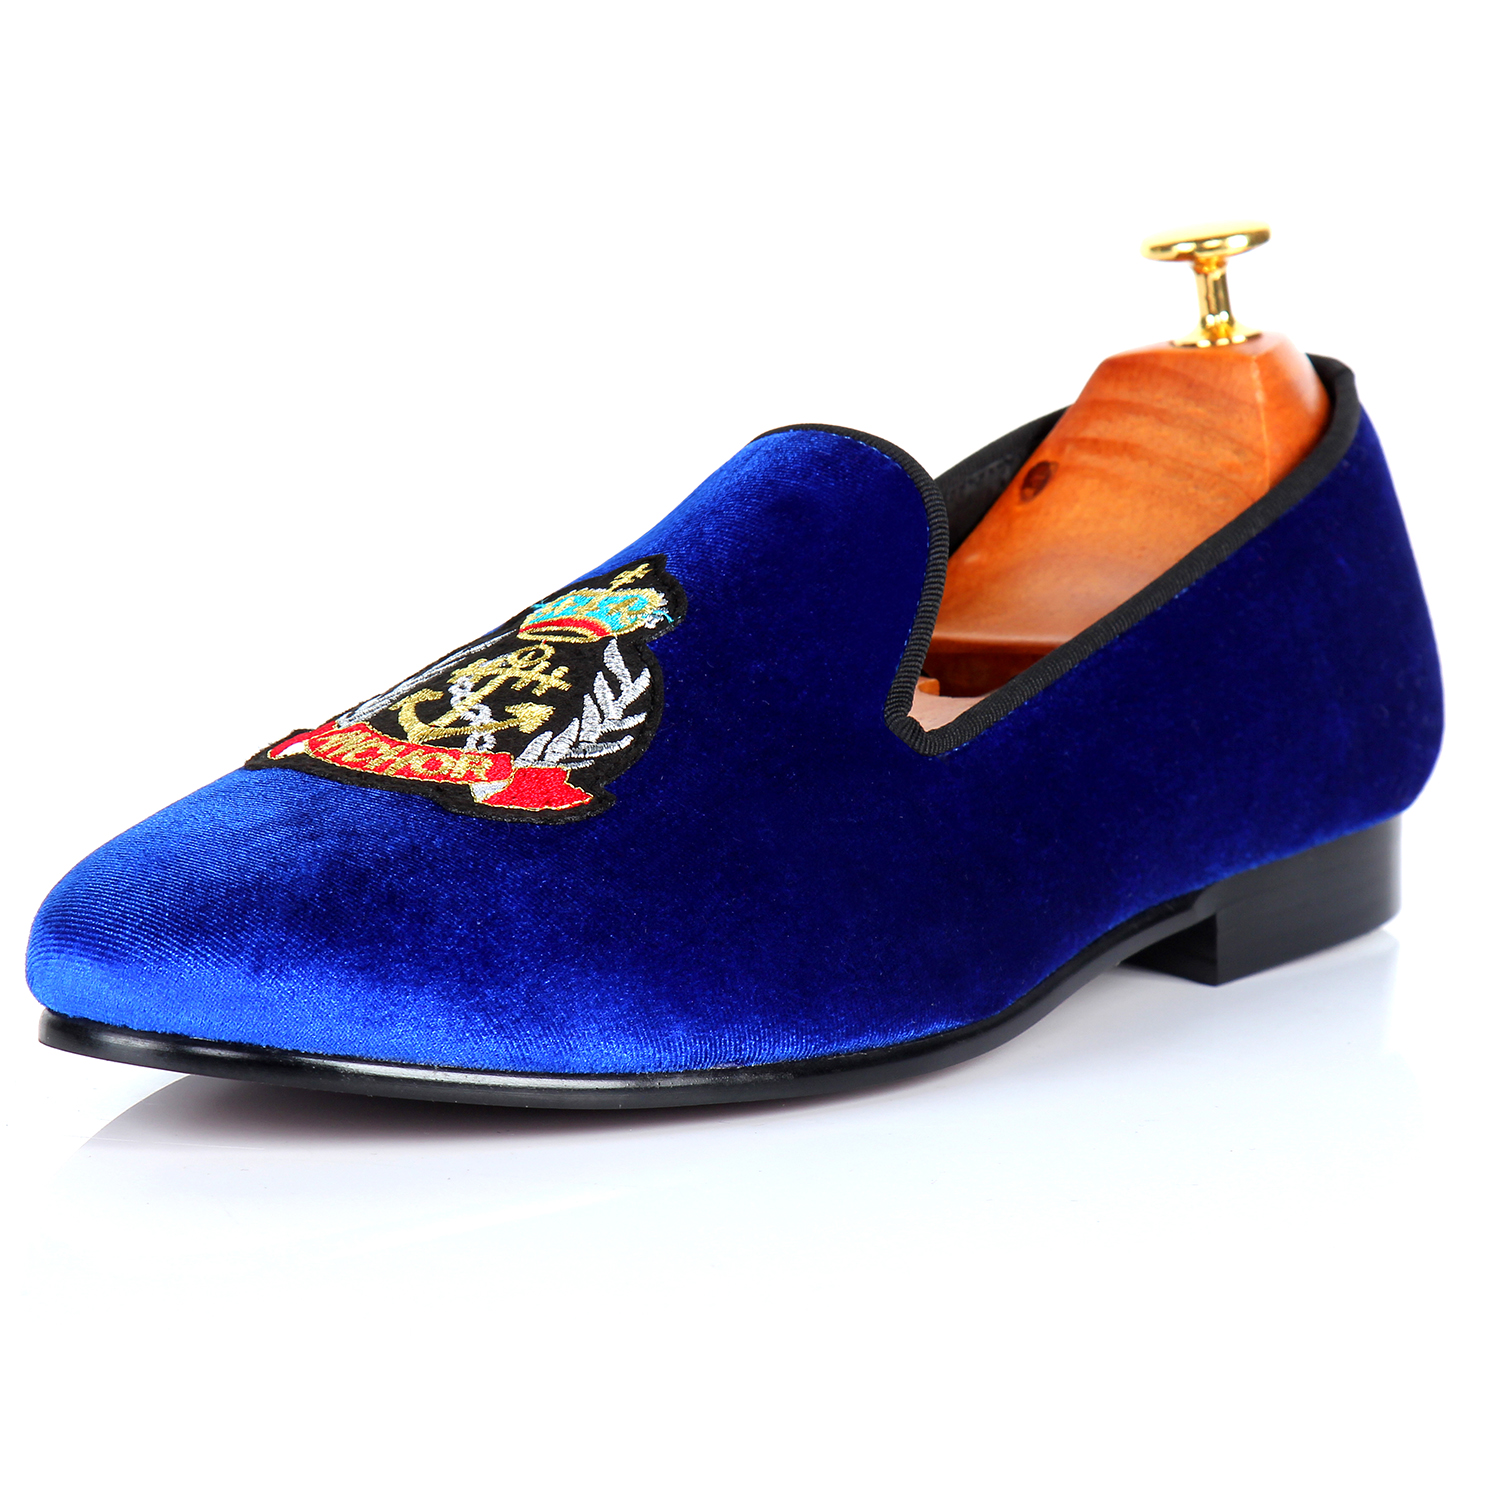 Harpelunde Formal Shoes Blue Badge Flats Handmade Velvet Loafers Size 7-14